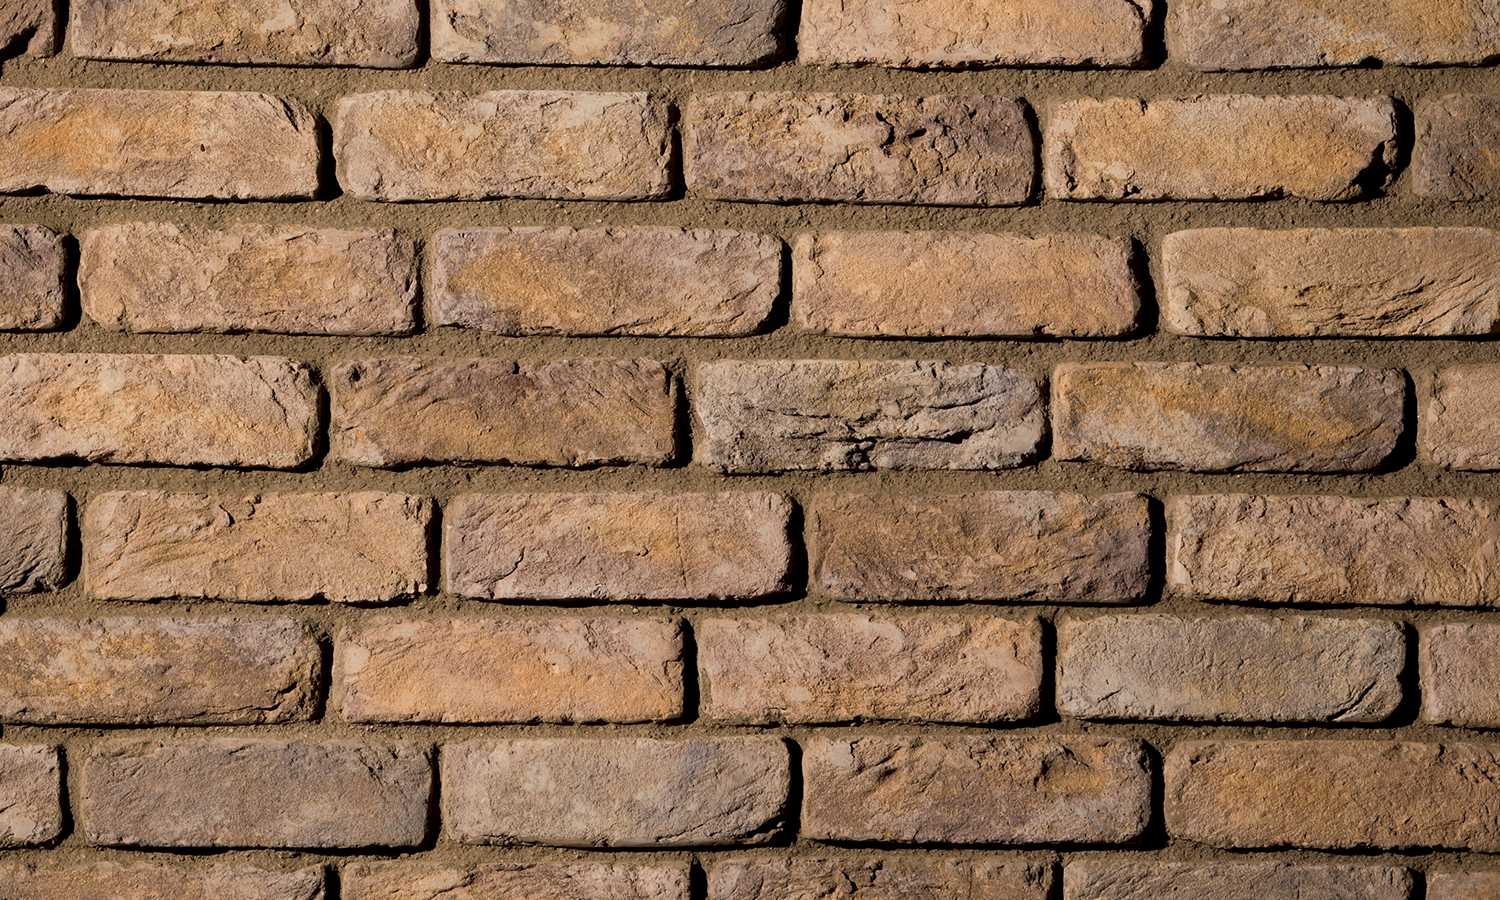 High Resolution Wallpaper | Brick 1500x900 px